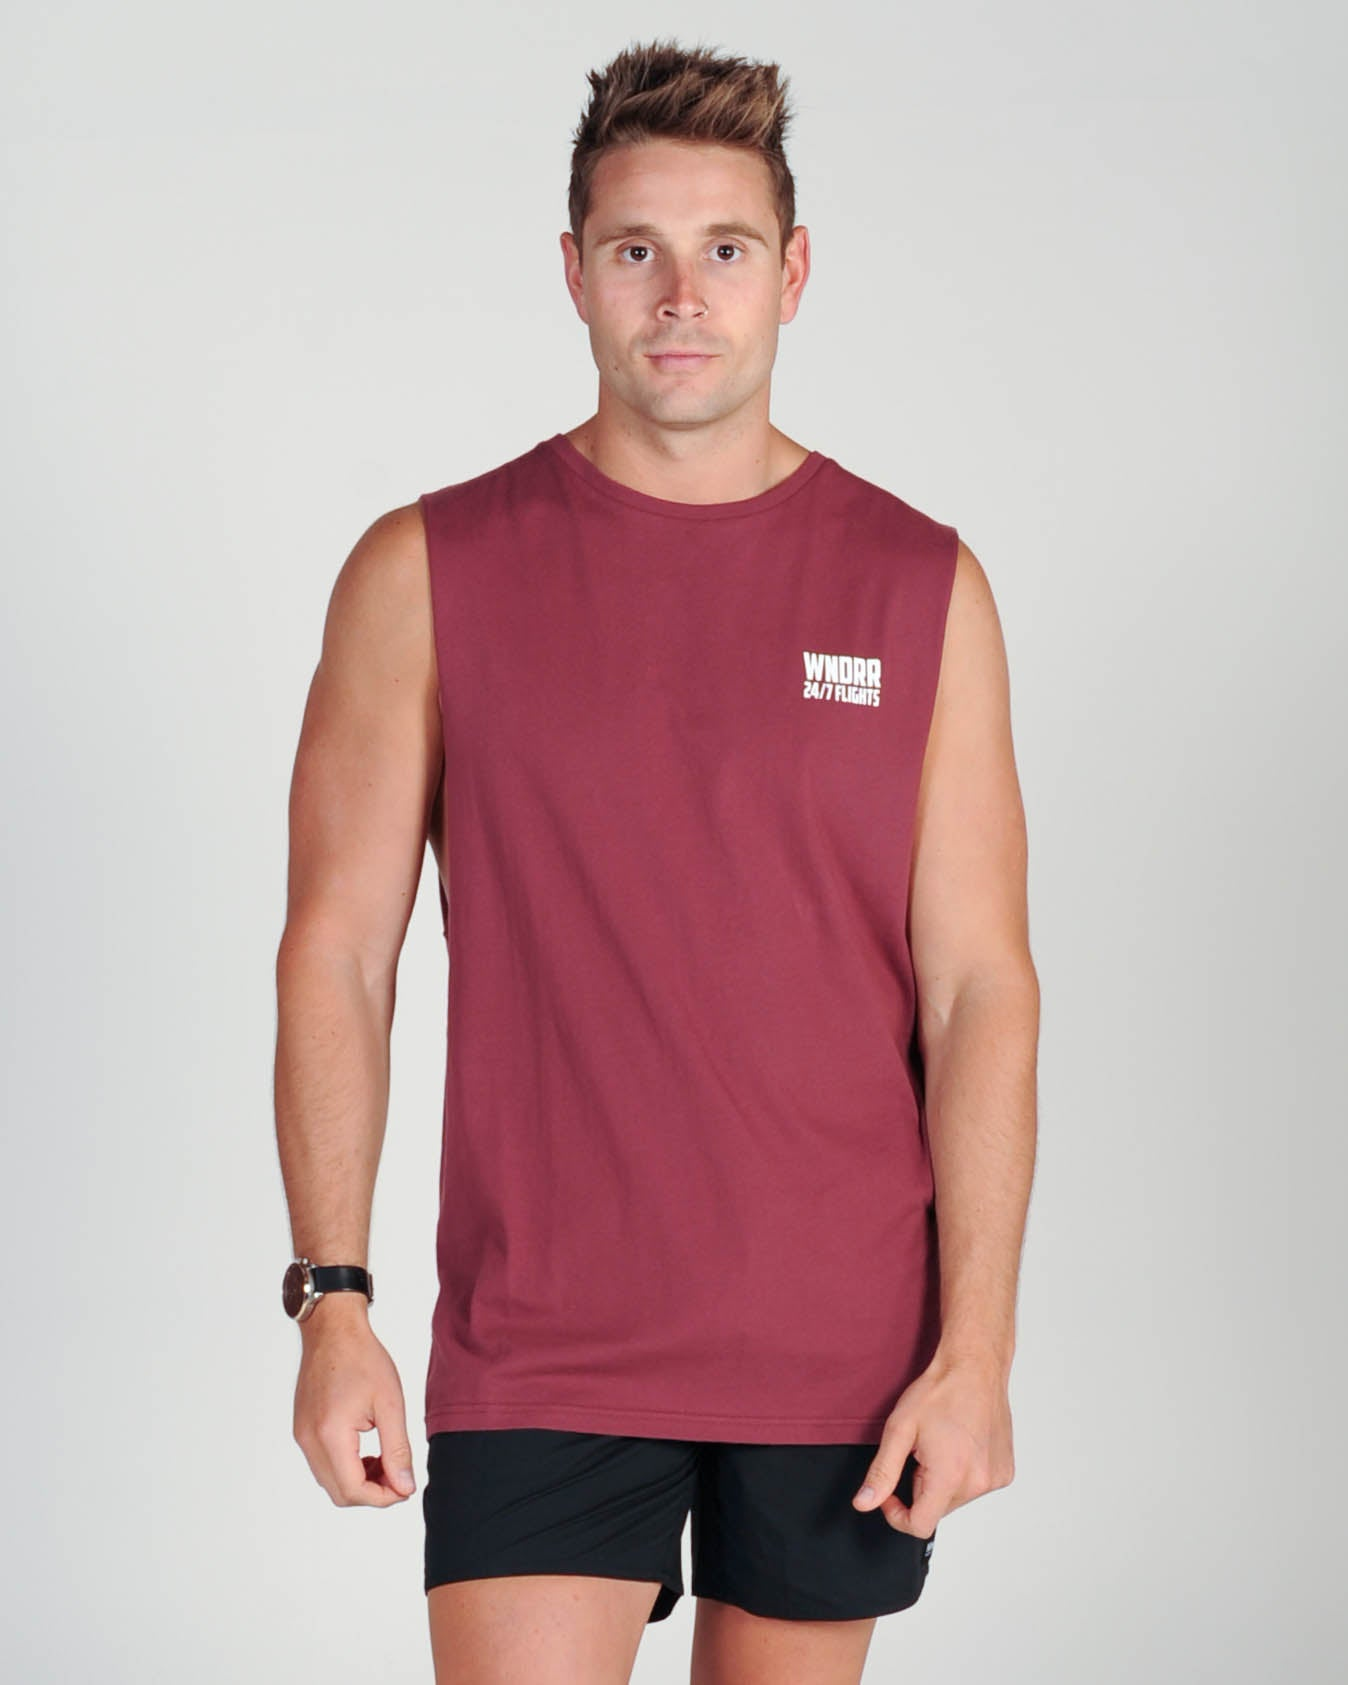 Wndrr Flights Muscle Top - Burgundy